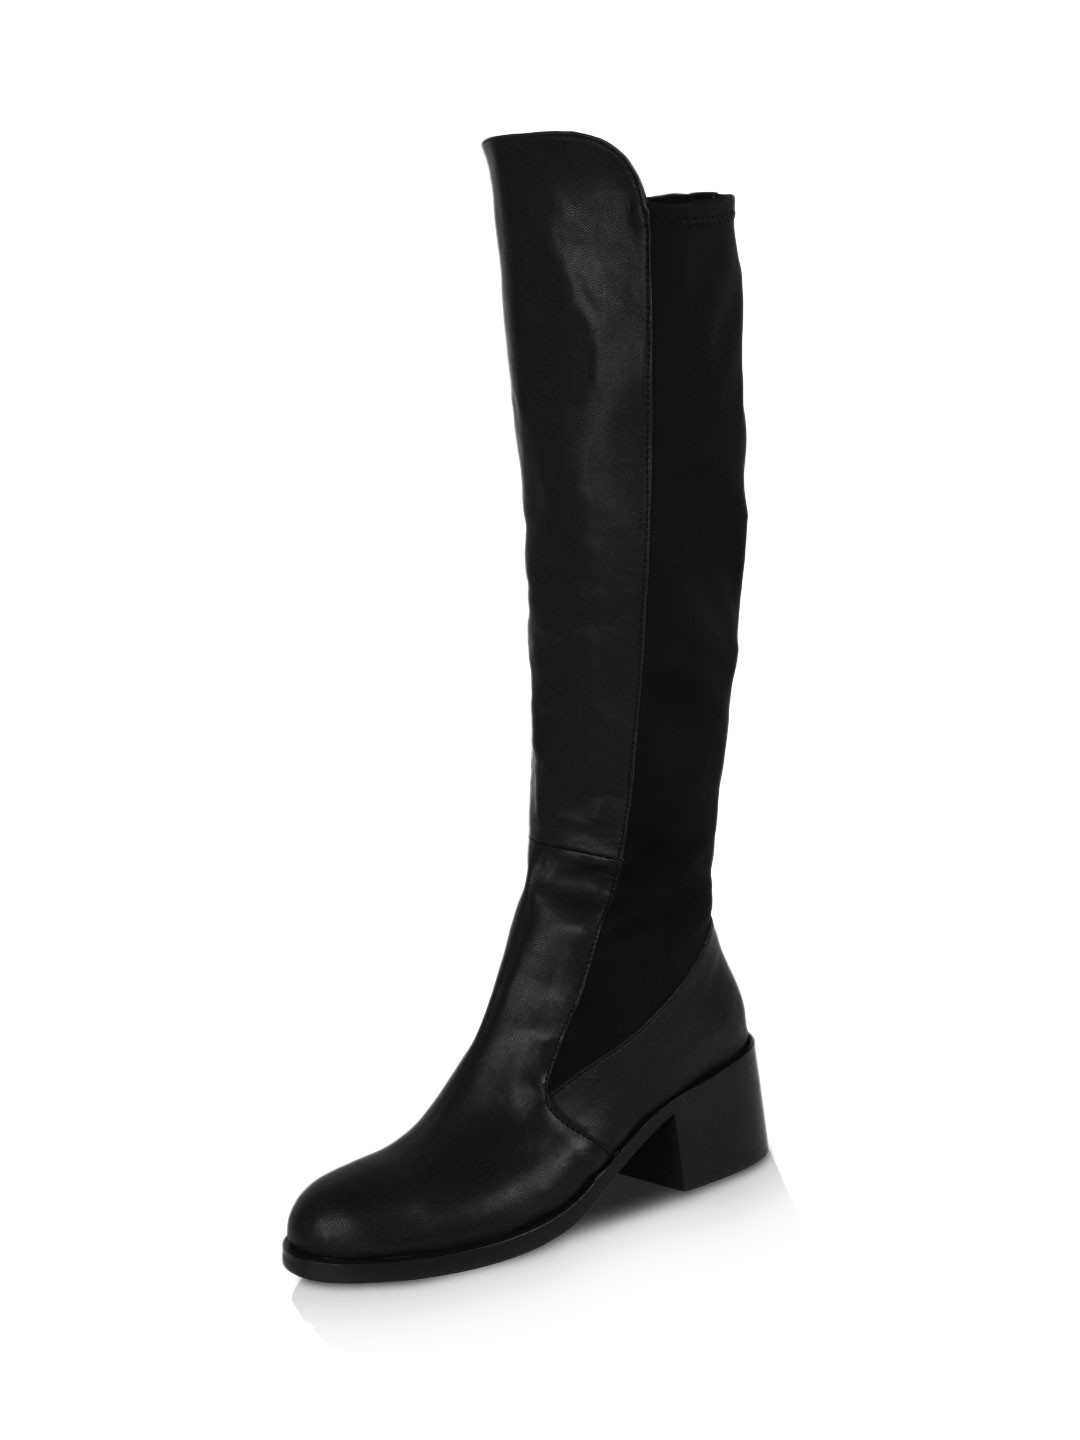 Buy AQ Knee Length Boots For Women - Women's Black Boots Online in ...